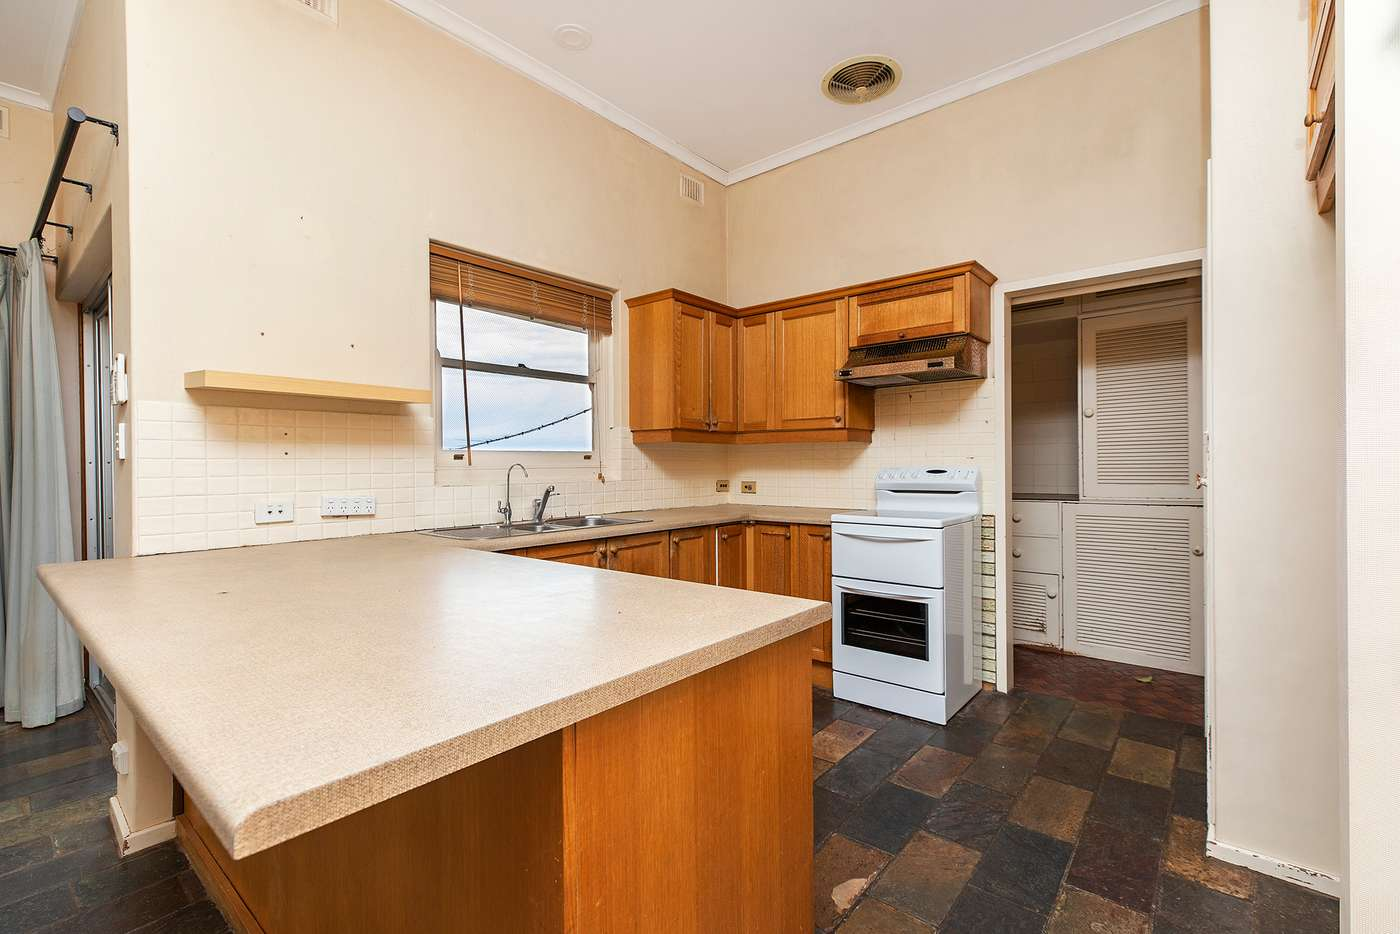 Fifth view of Homely house listing, 23 Greenfield Road, Seaview Downs SA 5049